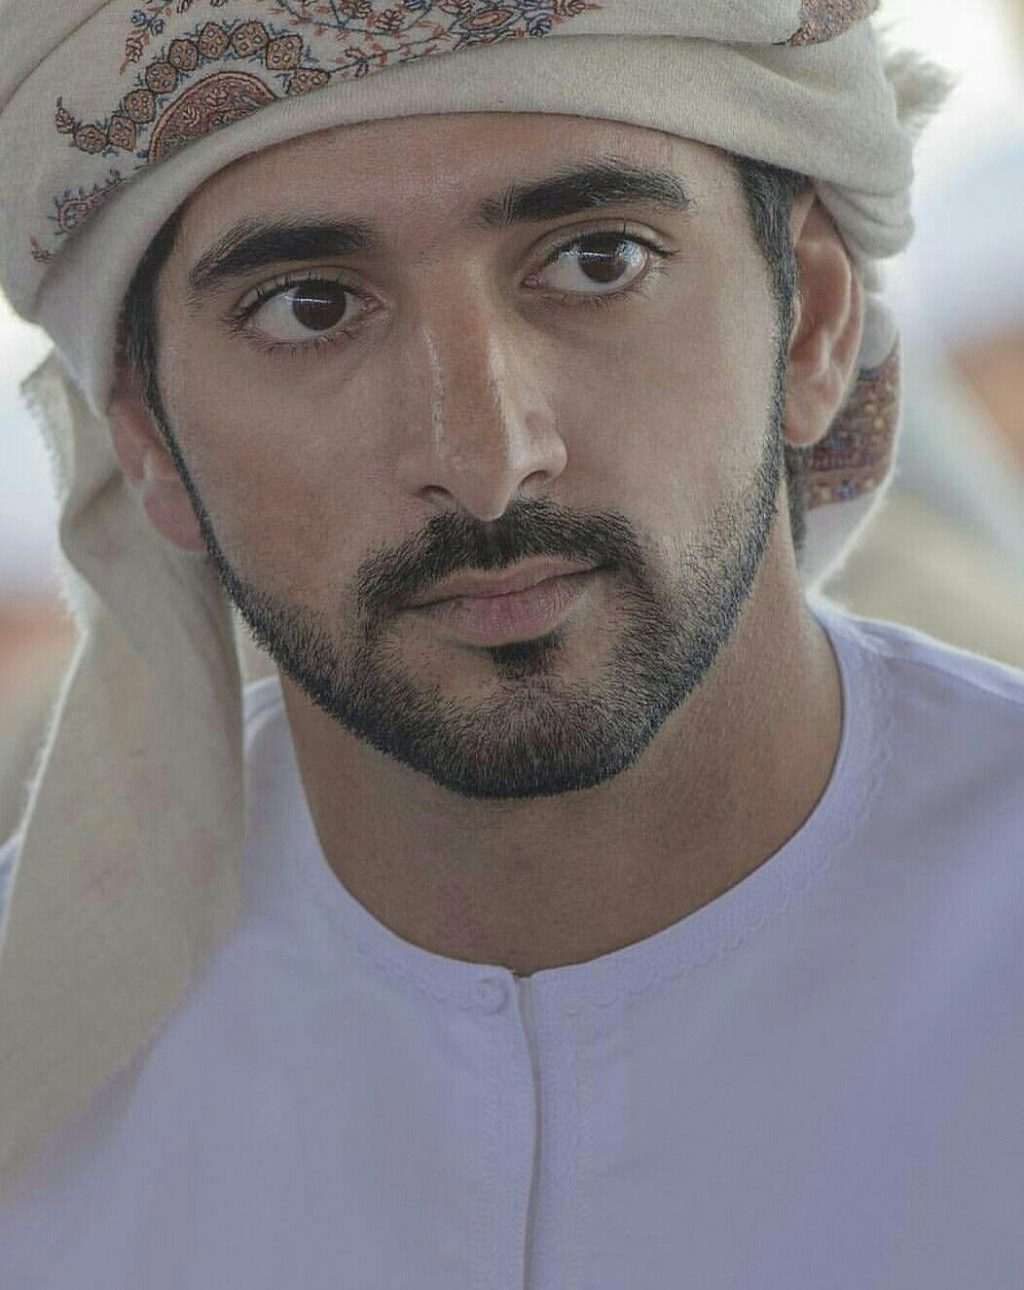 Fazza Takes to Instagram to Reinforce an Important Message